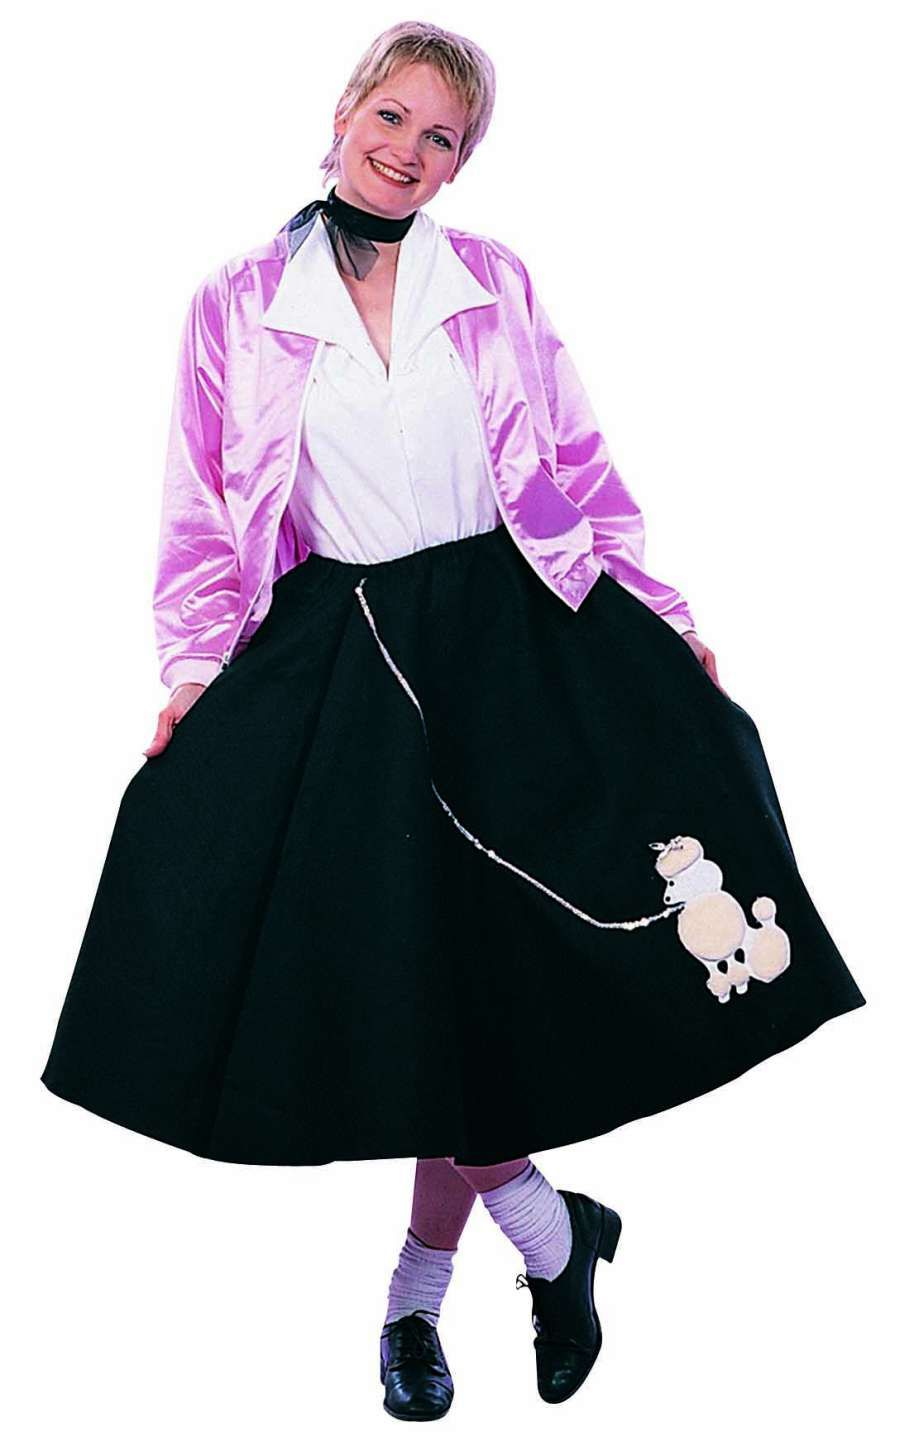 Poodle Skirt 50S PINK LADY COSTUME PLUS SIZE